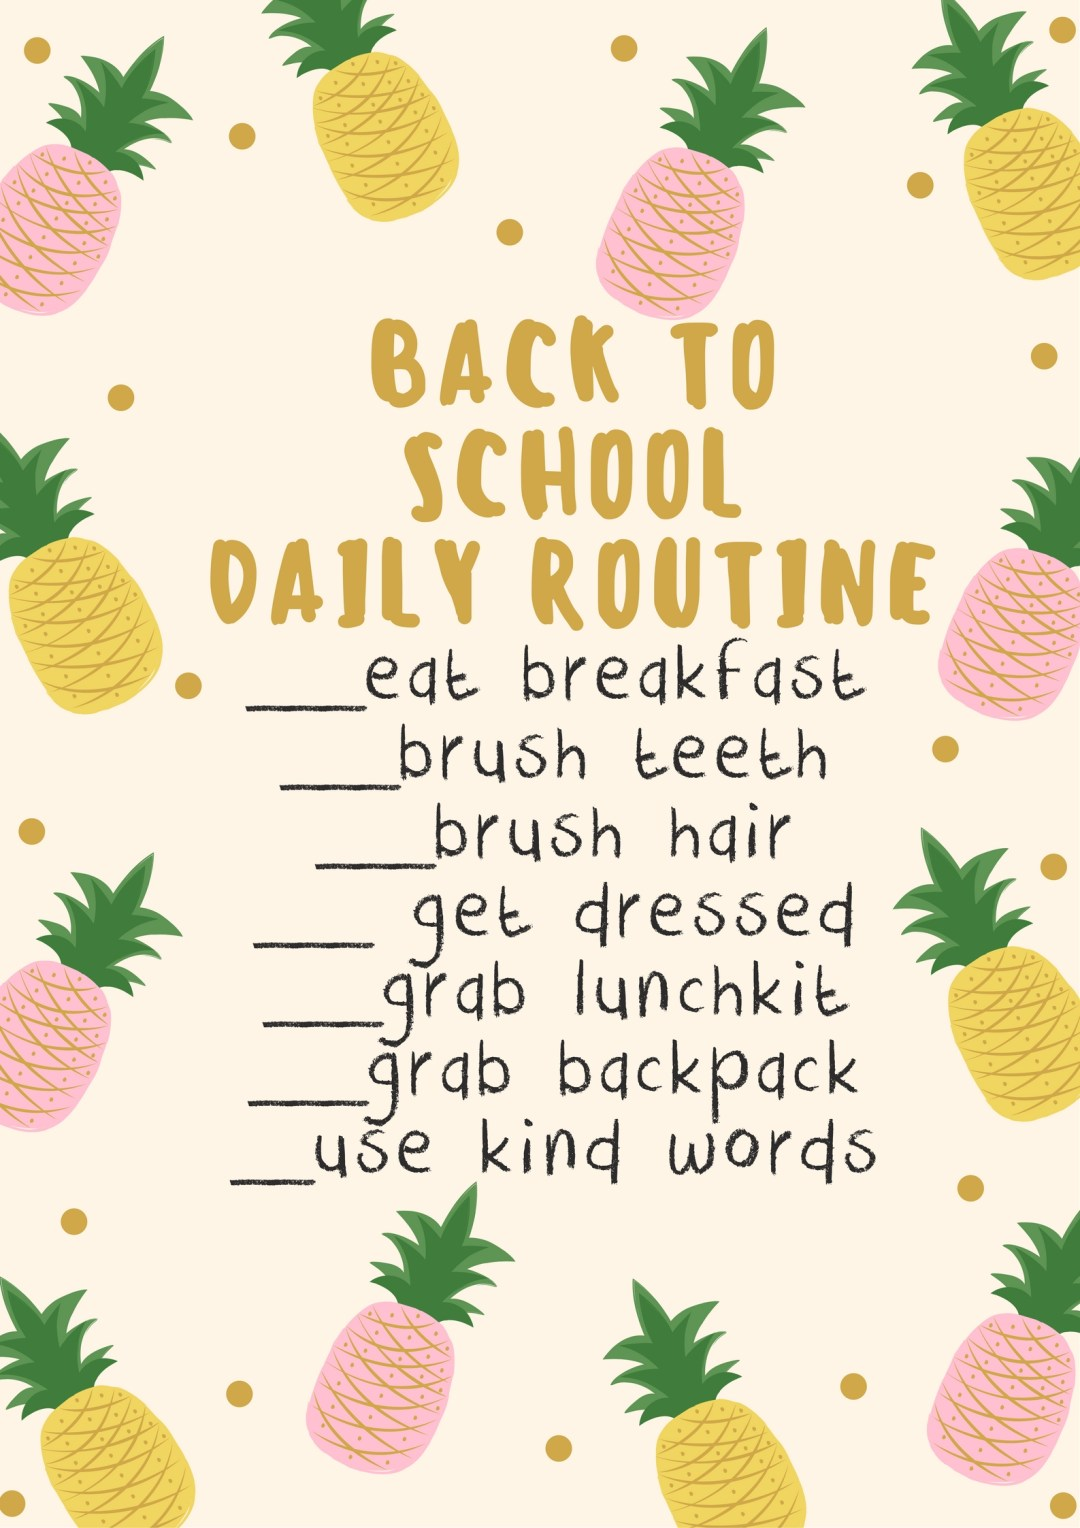 Back to school routine checklist